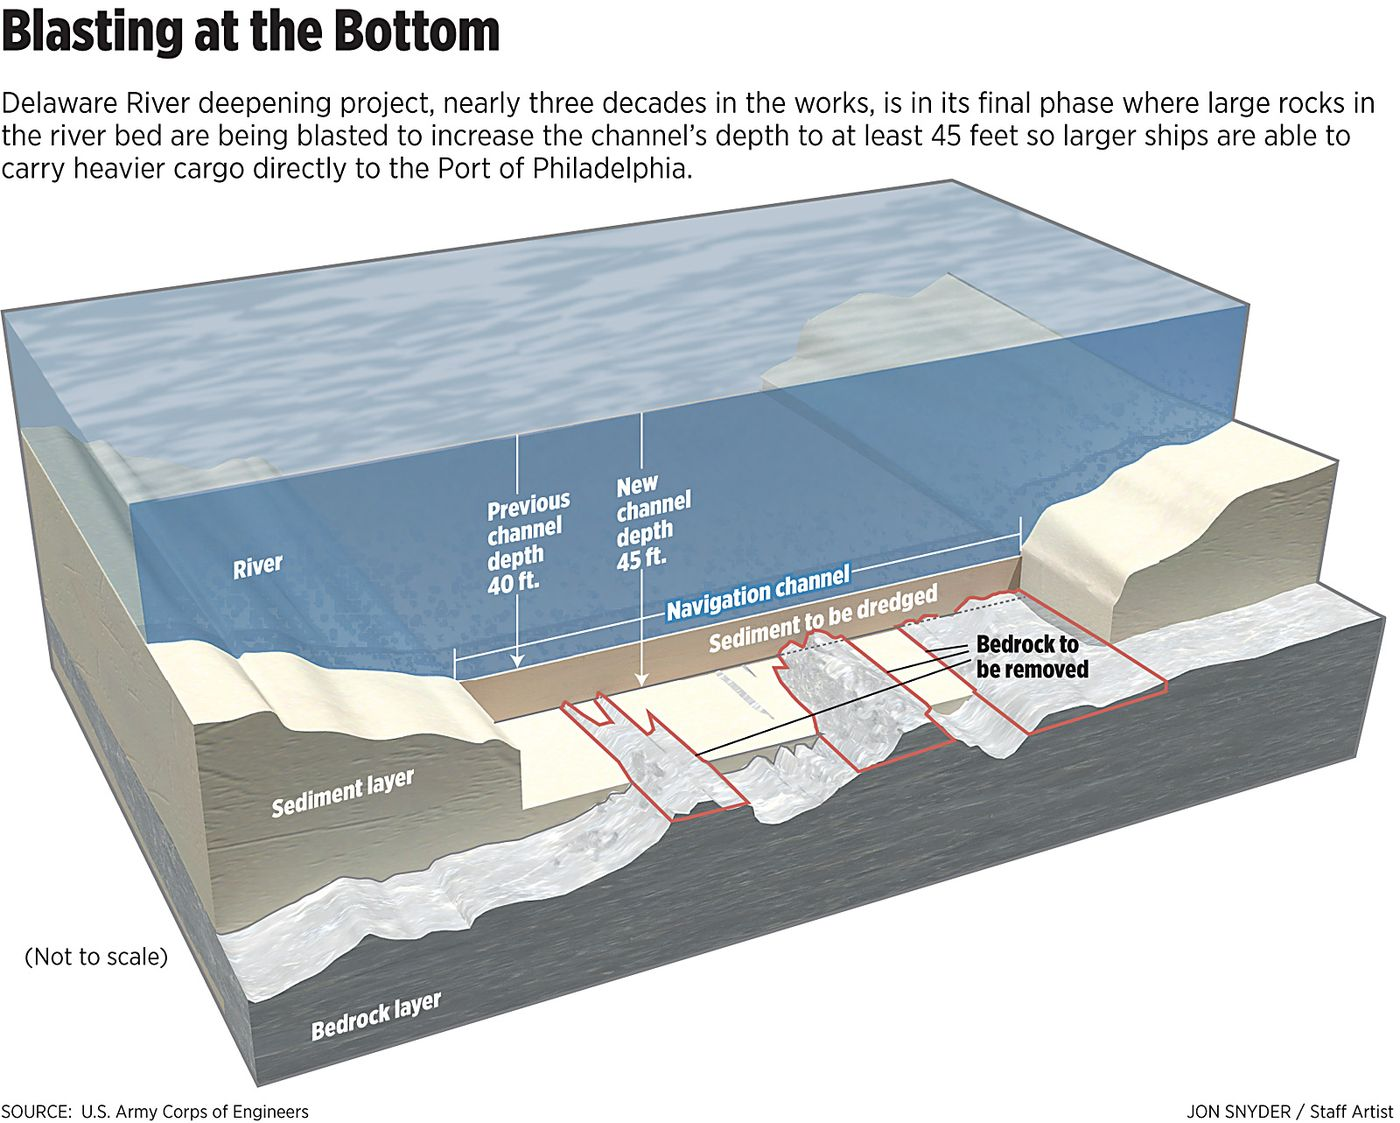 Delaware River deepening: 30 years and 16 million cubic